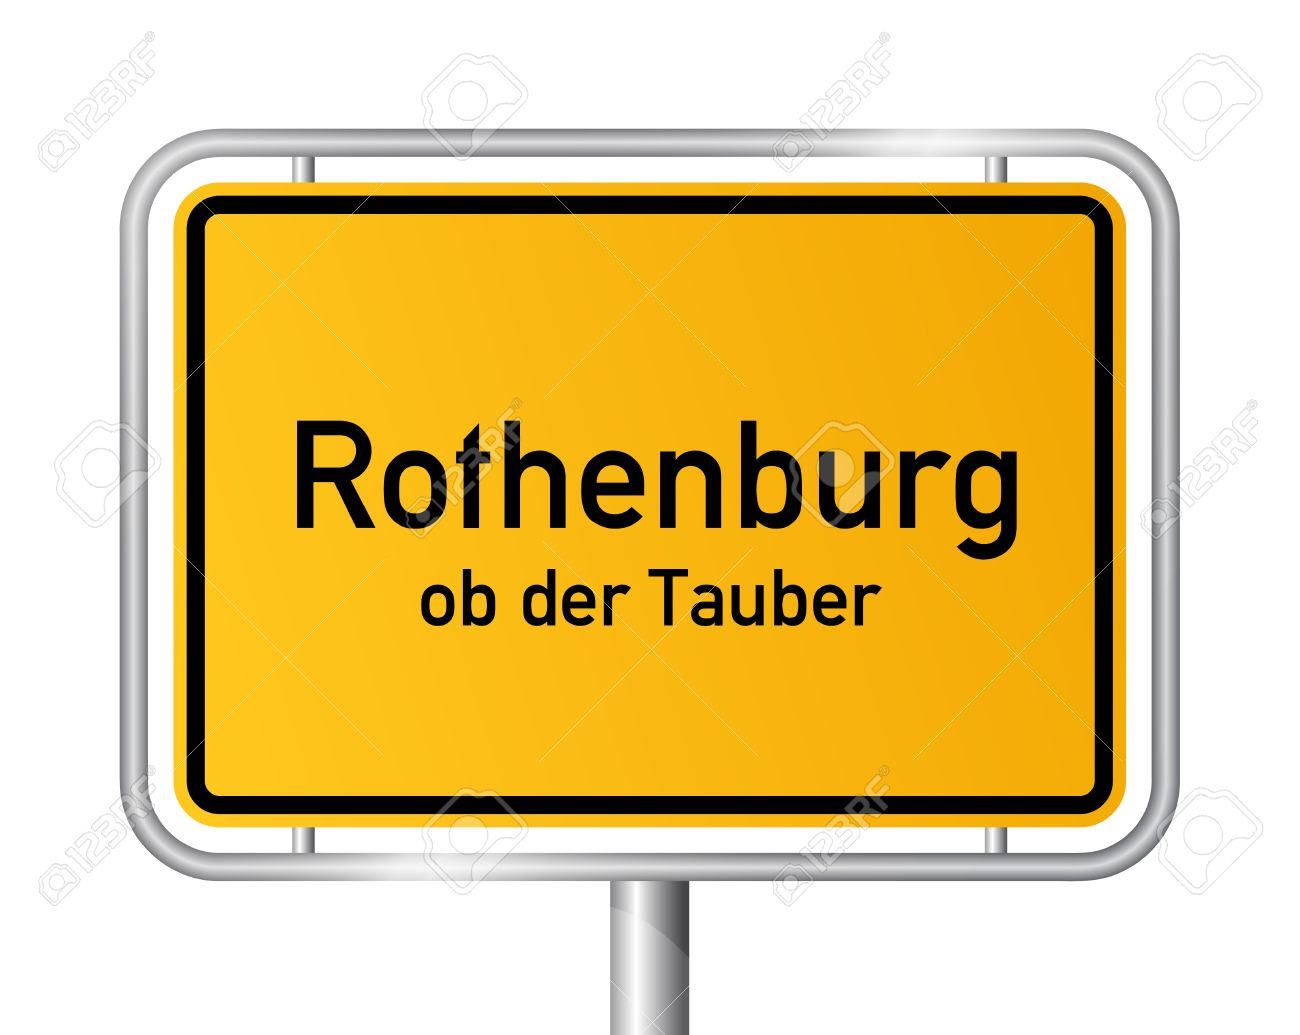 City Limit Sign ROTHENBURG OB DER TAUBER Against White Background.